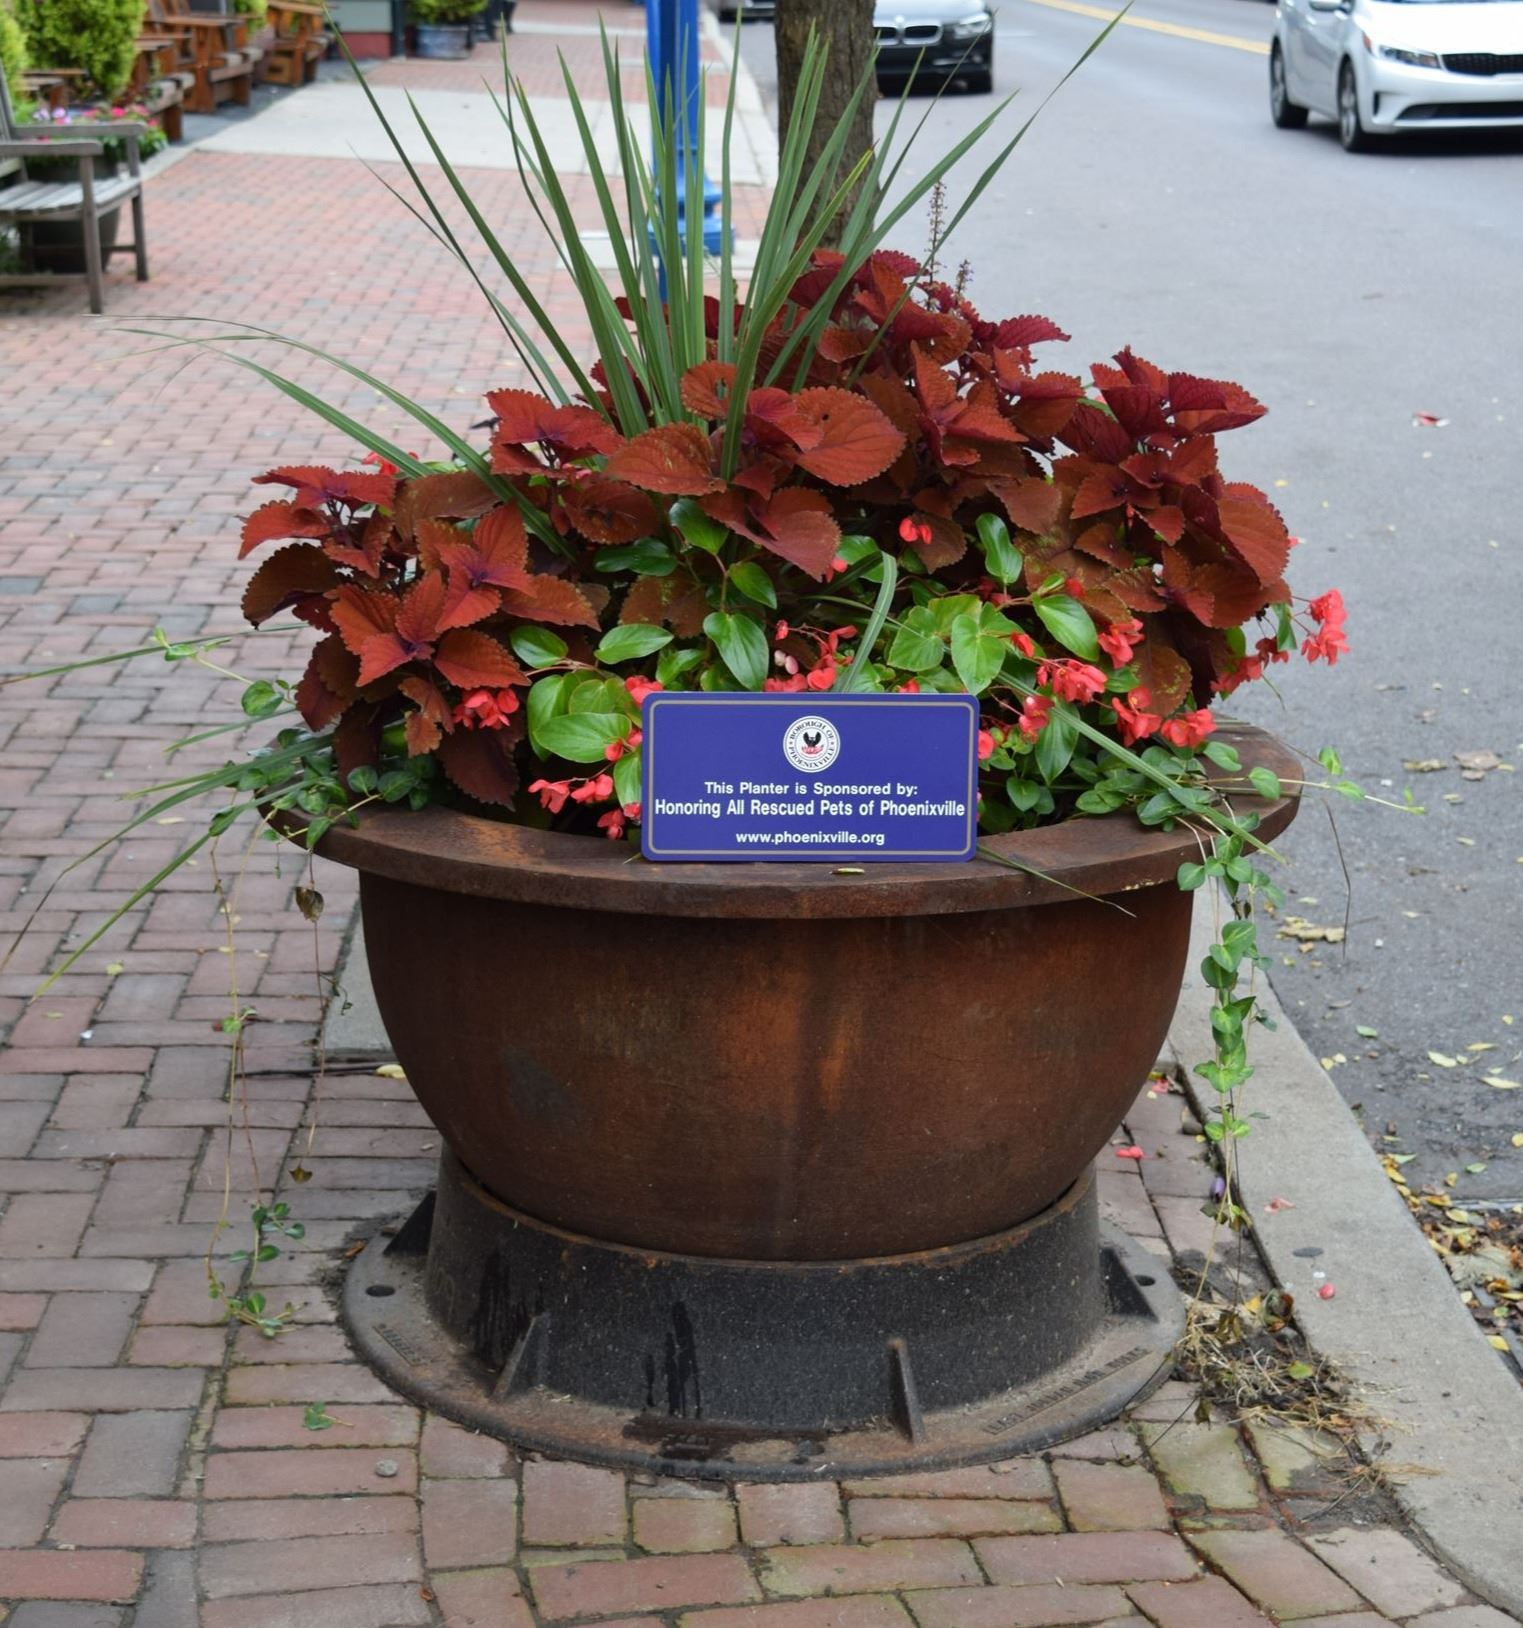 Honoring All Rescued Pets of Phoenixville Planter